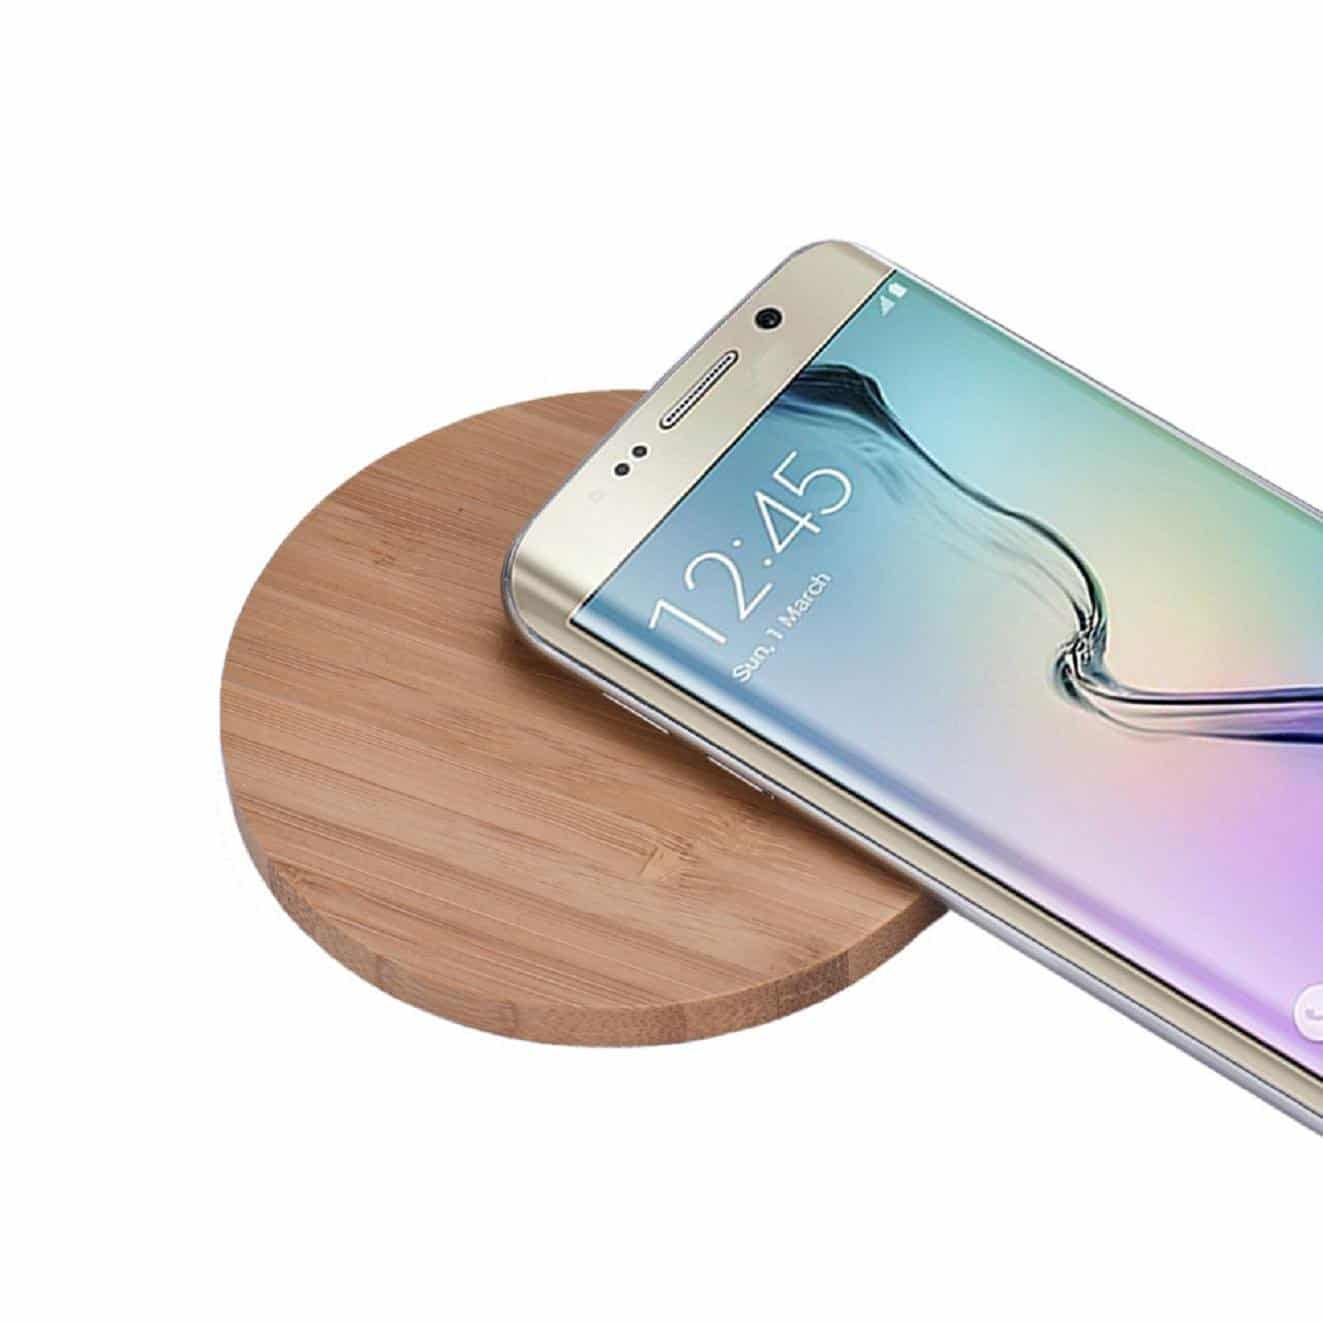 Wireless Charger for iPhone 8/iPhone X or Samsung Galaxy